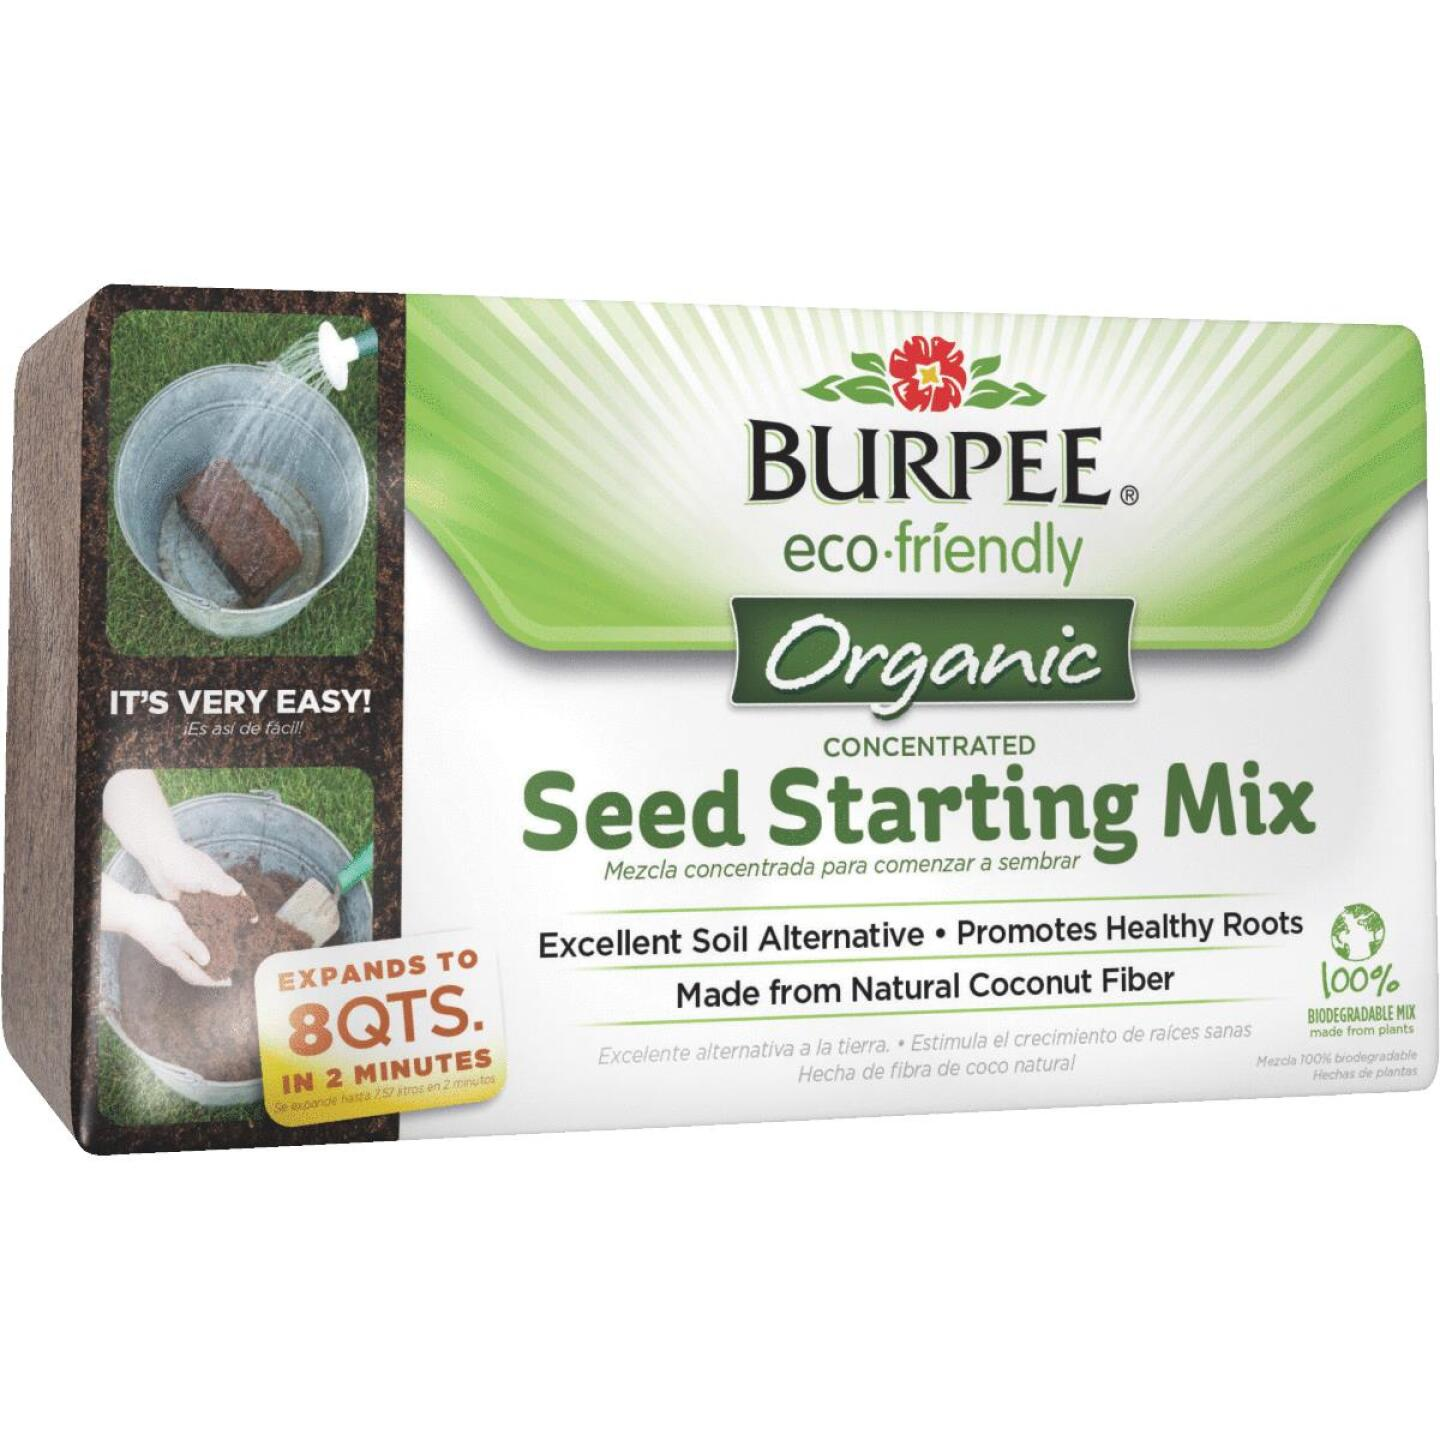 Burpee 8 Qt. Concentrated Brick In-Ground Organic Seed Starting Mix Image 1